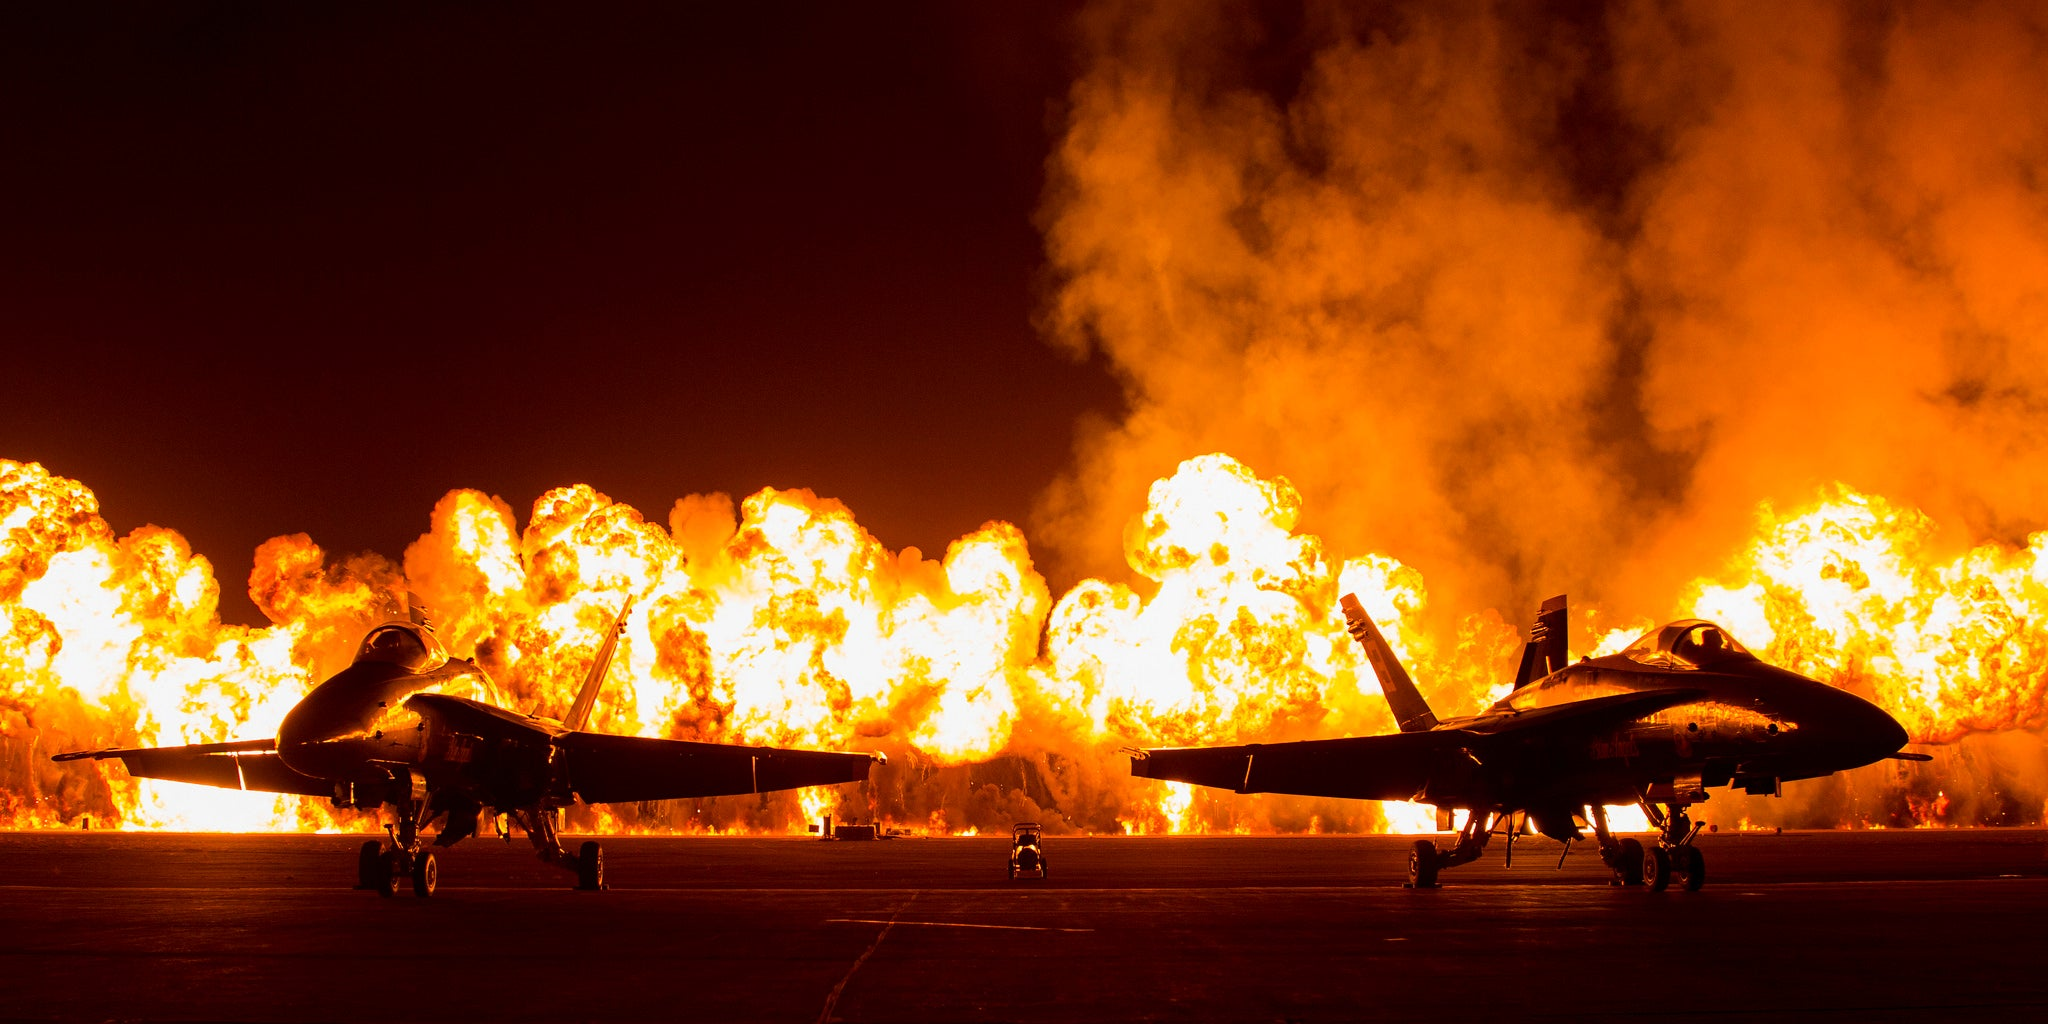 F-18s against a wall of fire totally look like they're escaping explosions